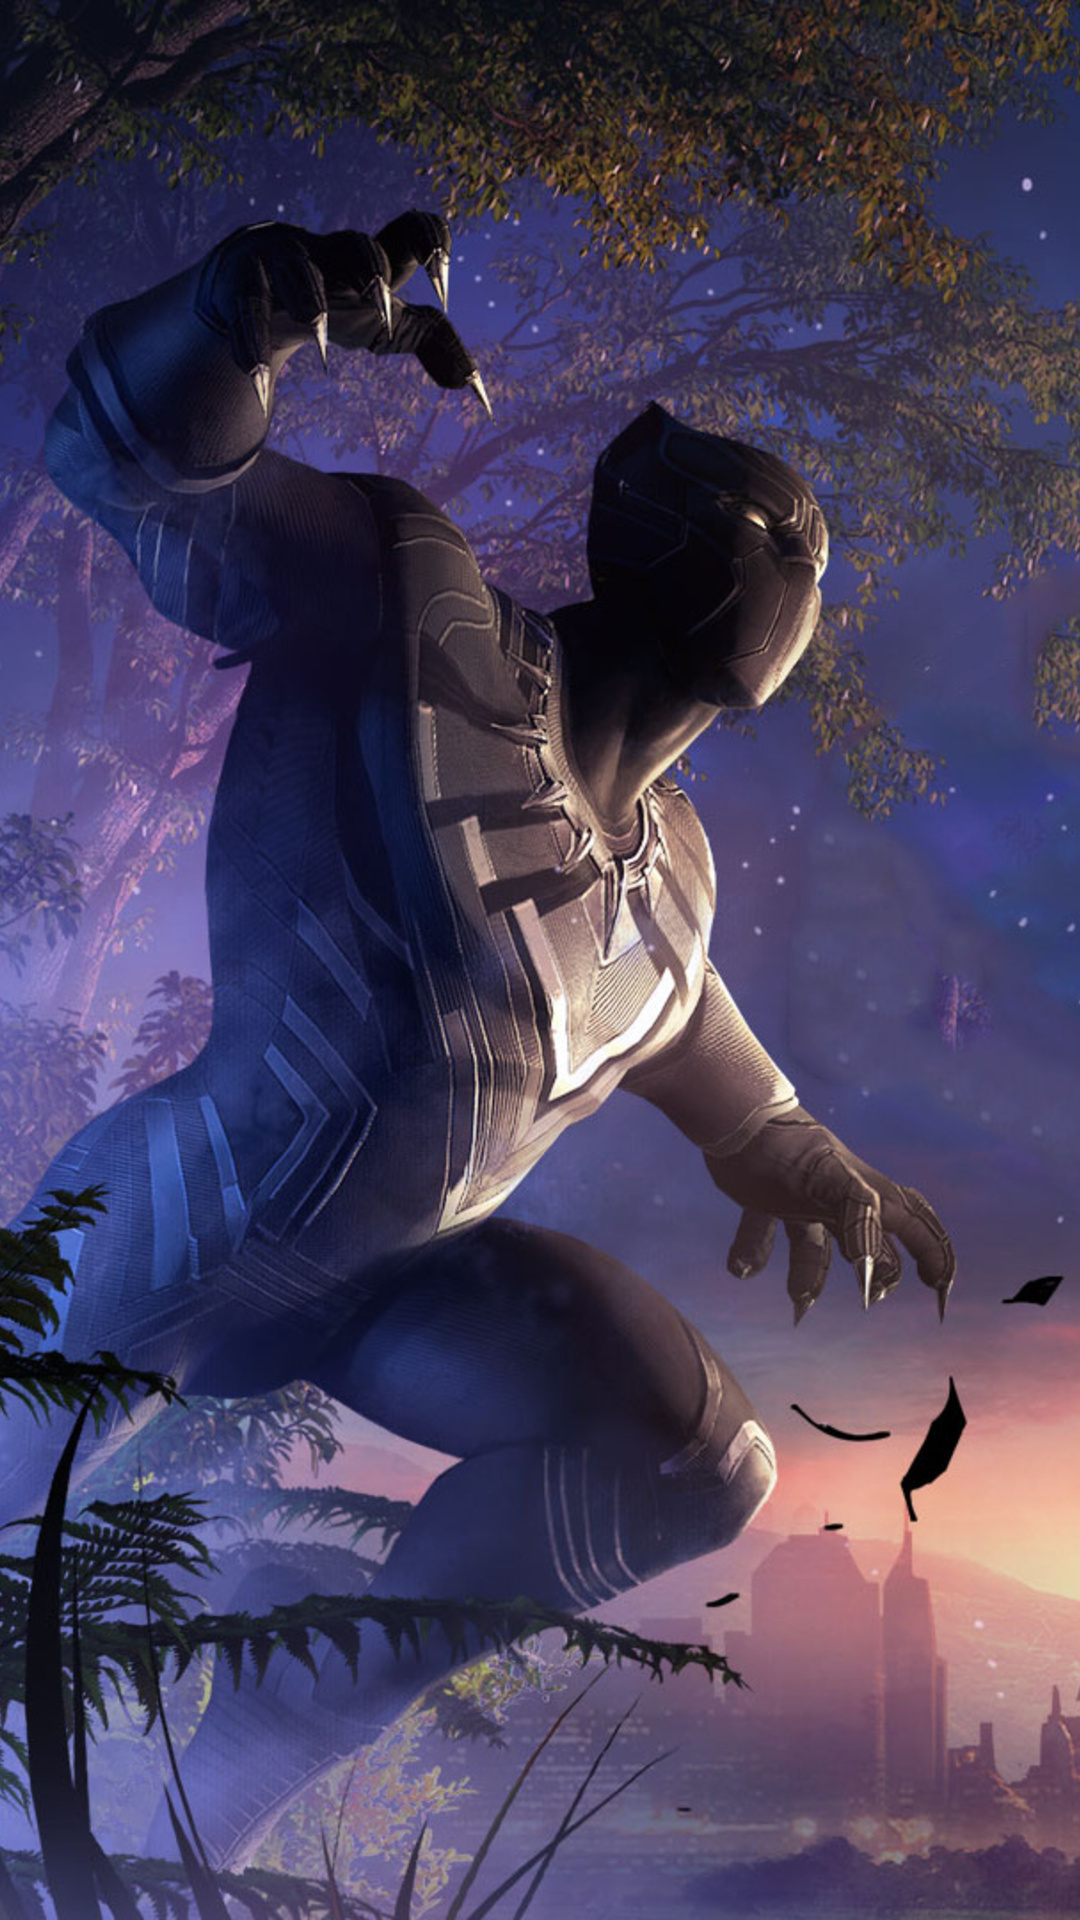 Amazing Wallpaper Marvel Iphone 7 - black-panther-and-erik-killmonger-marvel-contest-of-champions-dv-1080x1920  Pictures_1001865.jpg